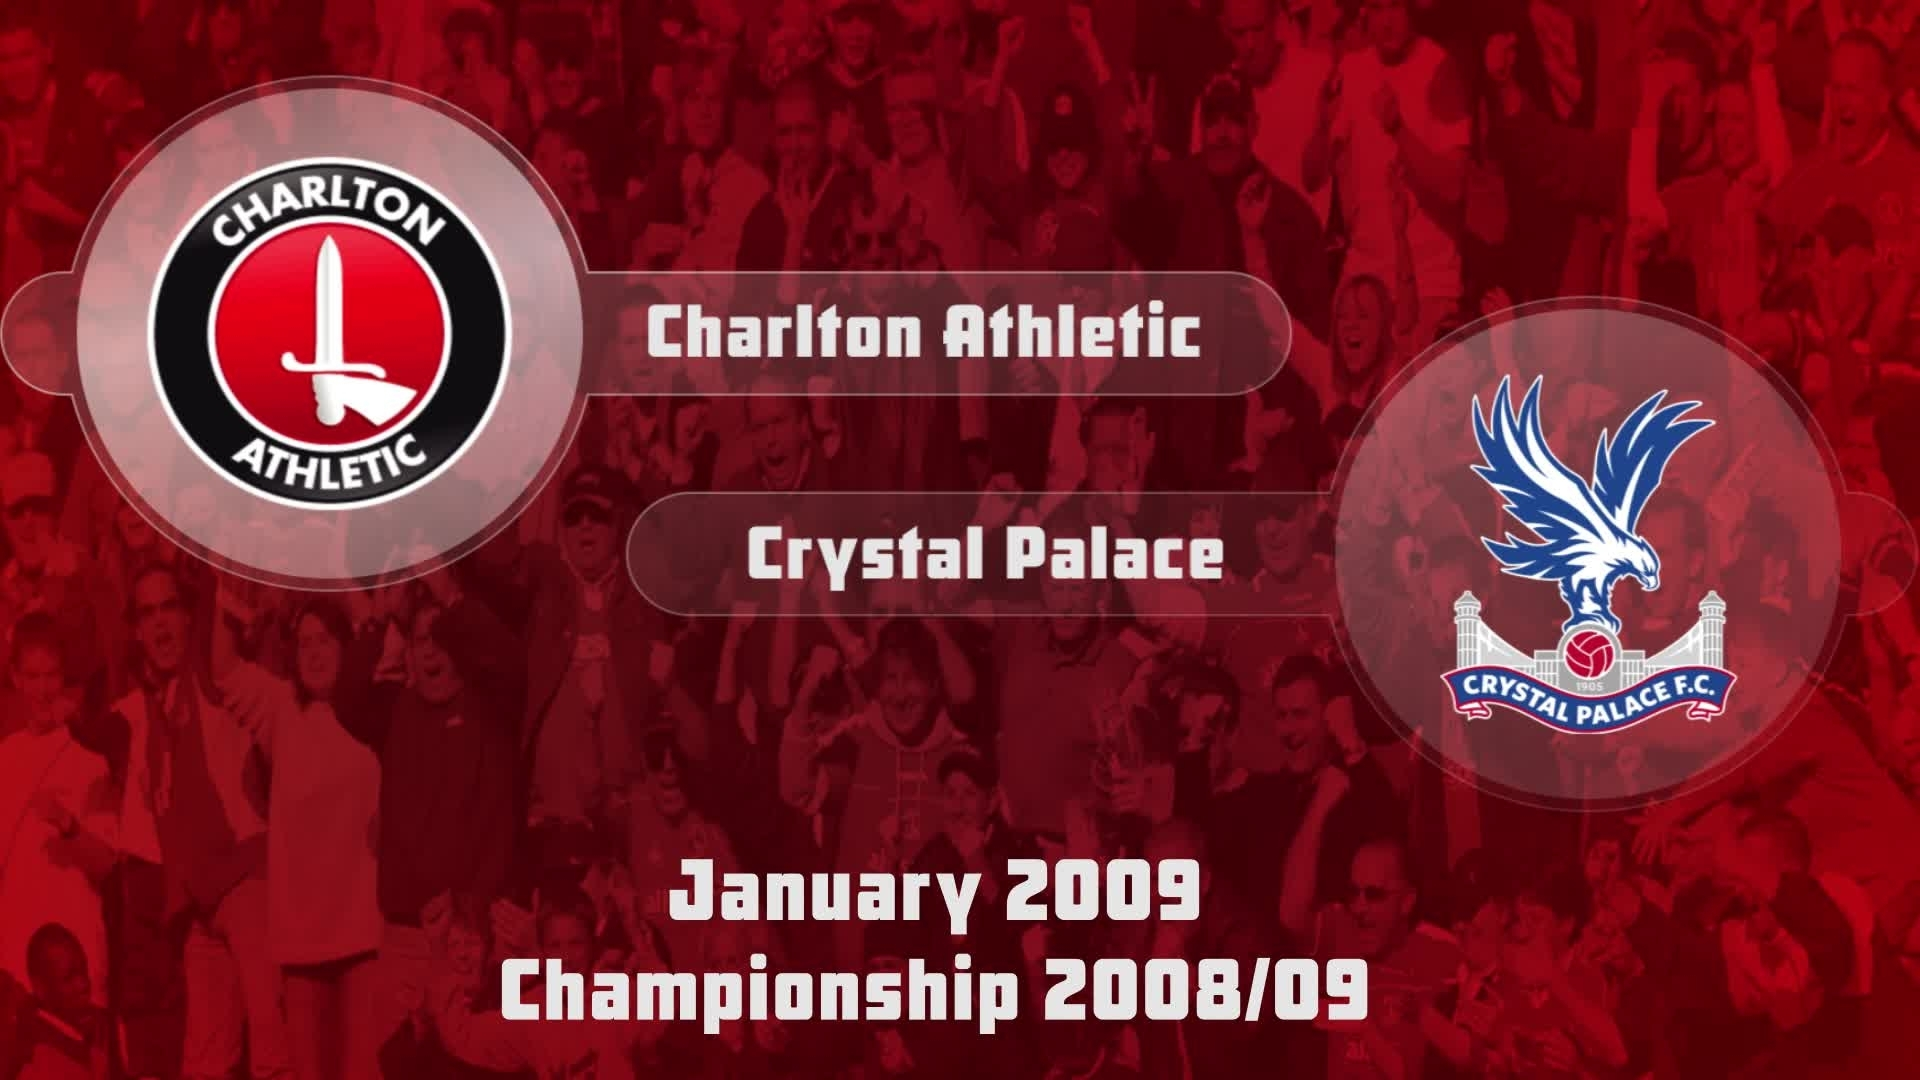 33 HIGHLIGHTS | Charlton 1 Crystal Palace 0 (Jan 2009)